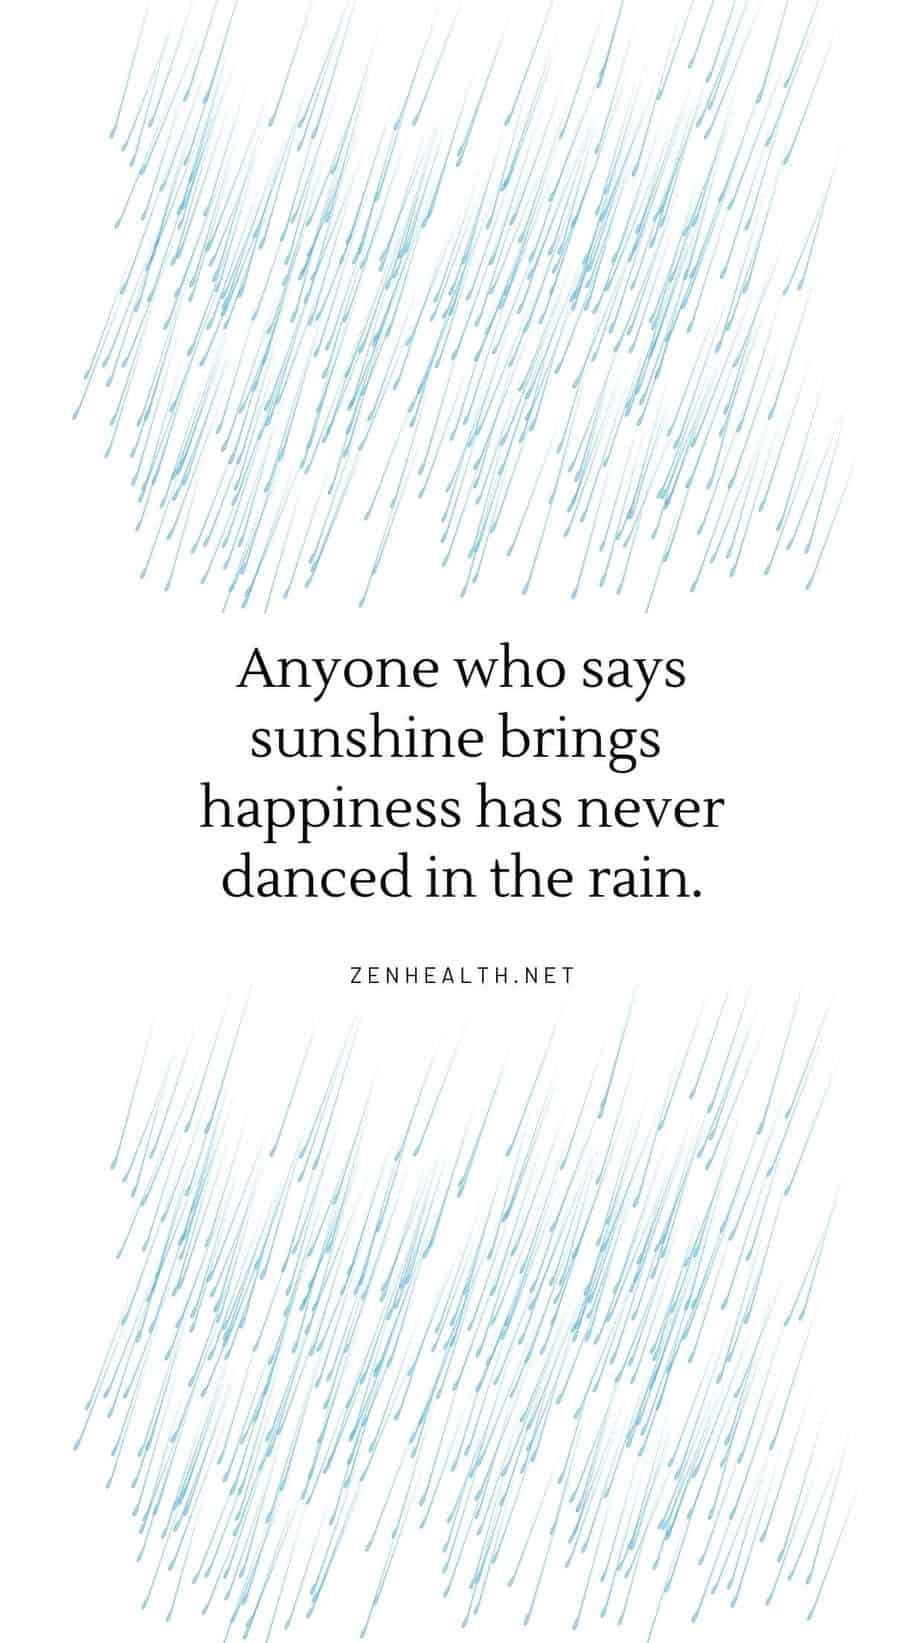 Anyone who says sunshine brings happiness has never danced in the rain.